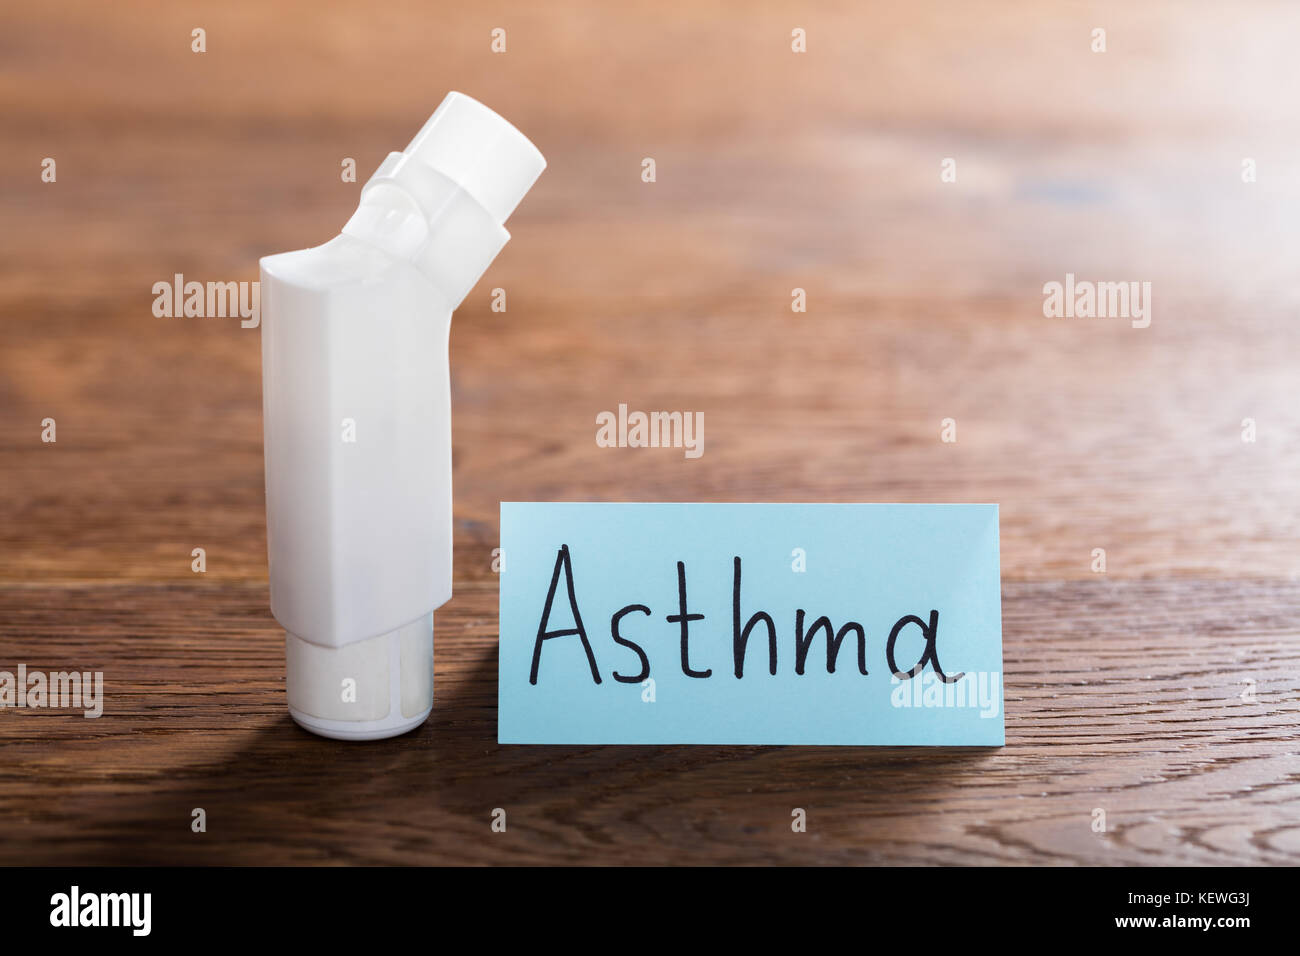 Medical Concept Of Asthma With An Inhaler On Wooden Desk - Stock Image